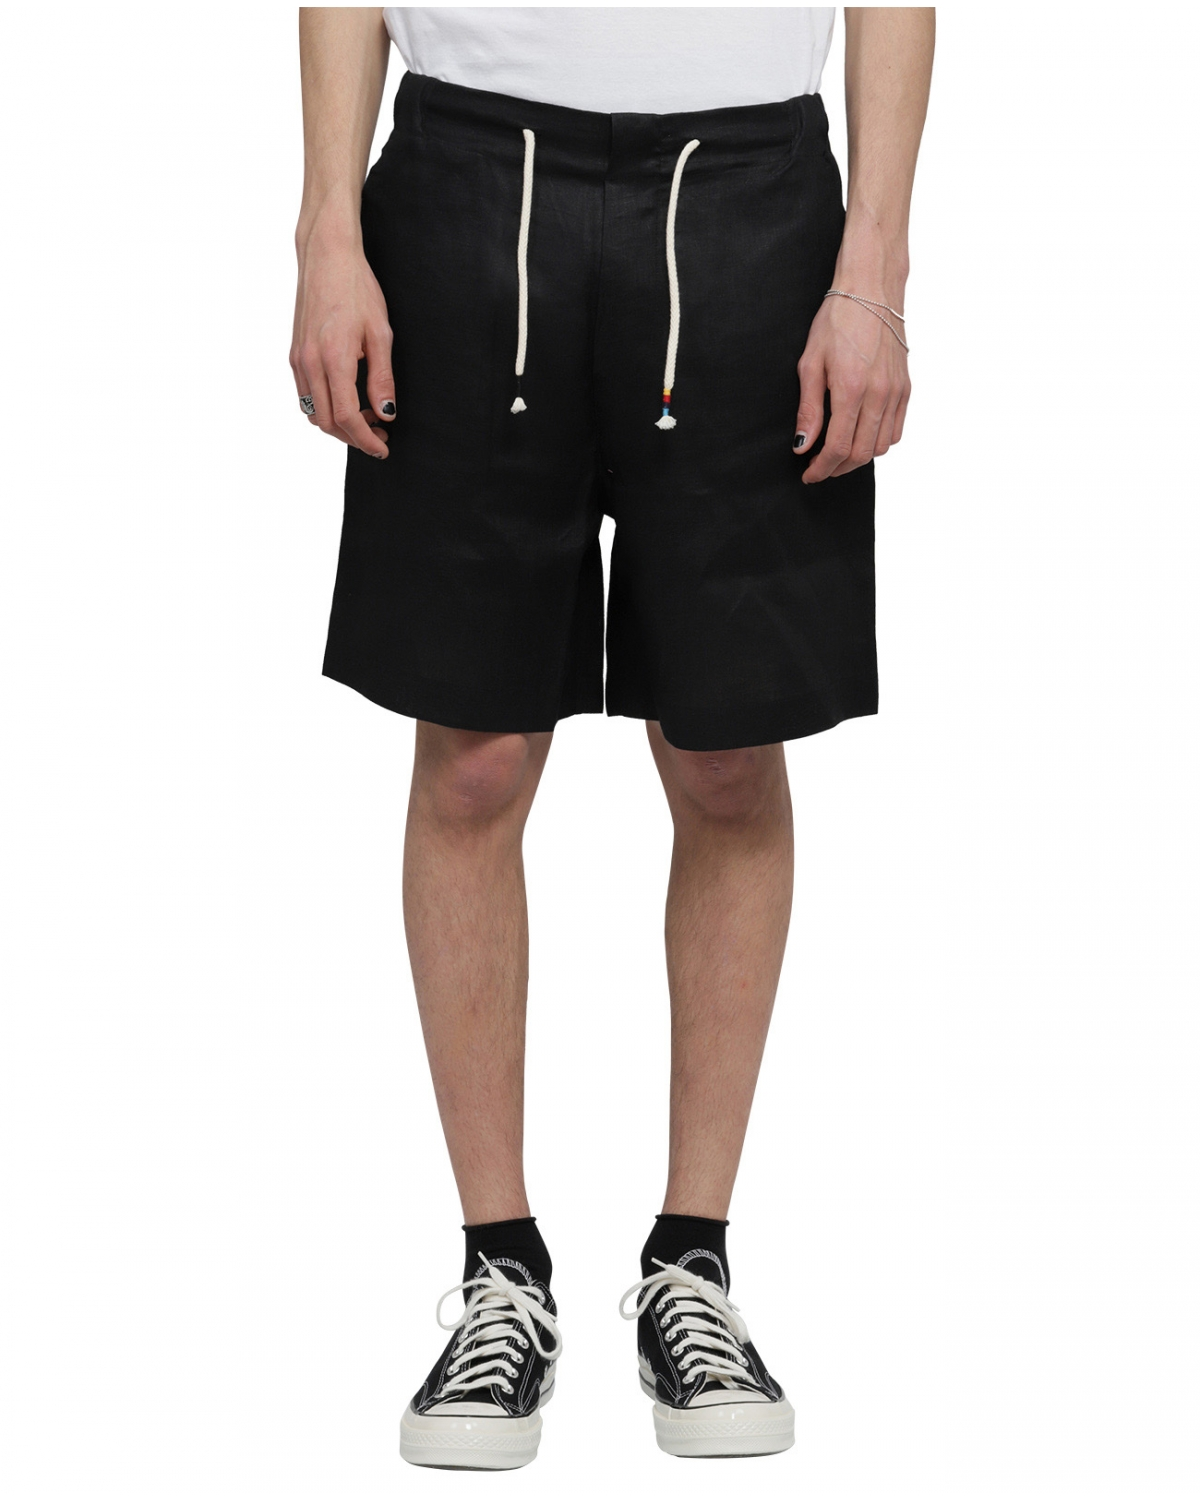 Silted black Coffin bermudas